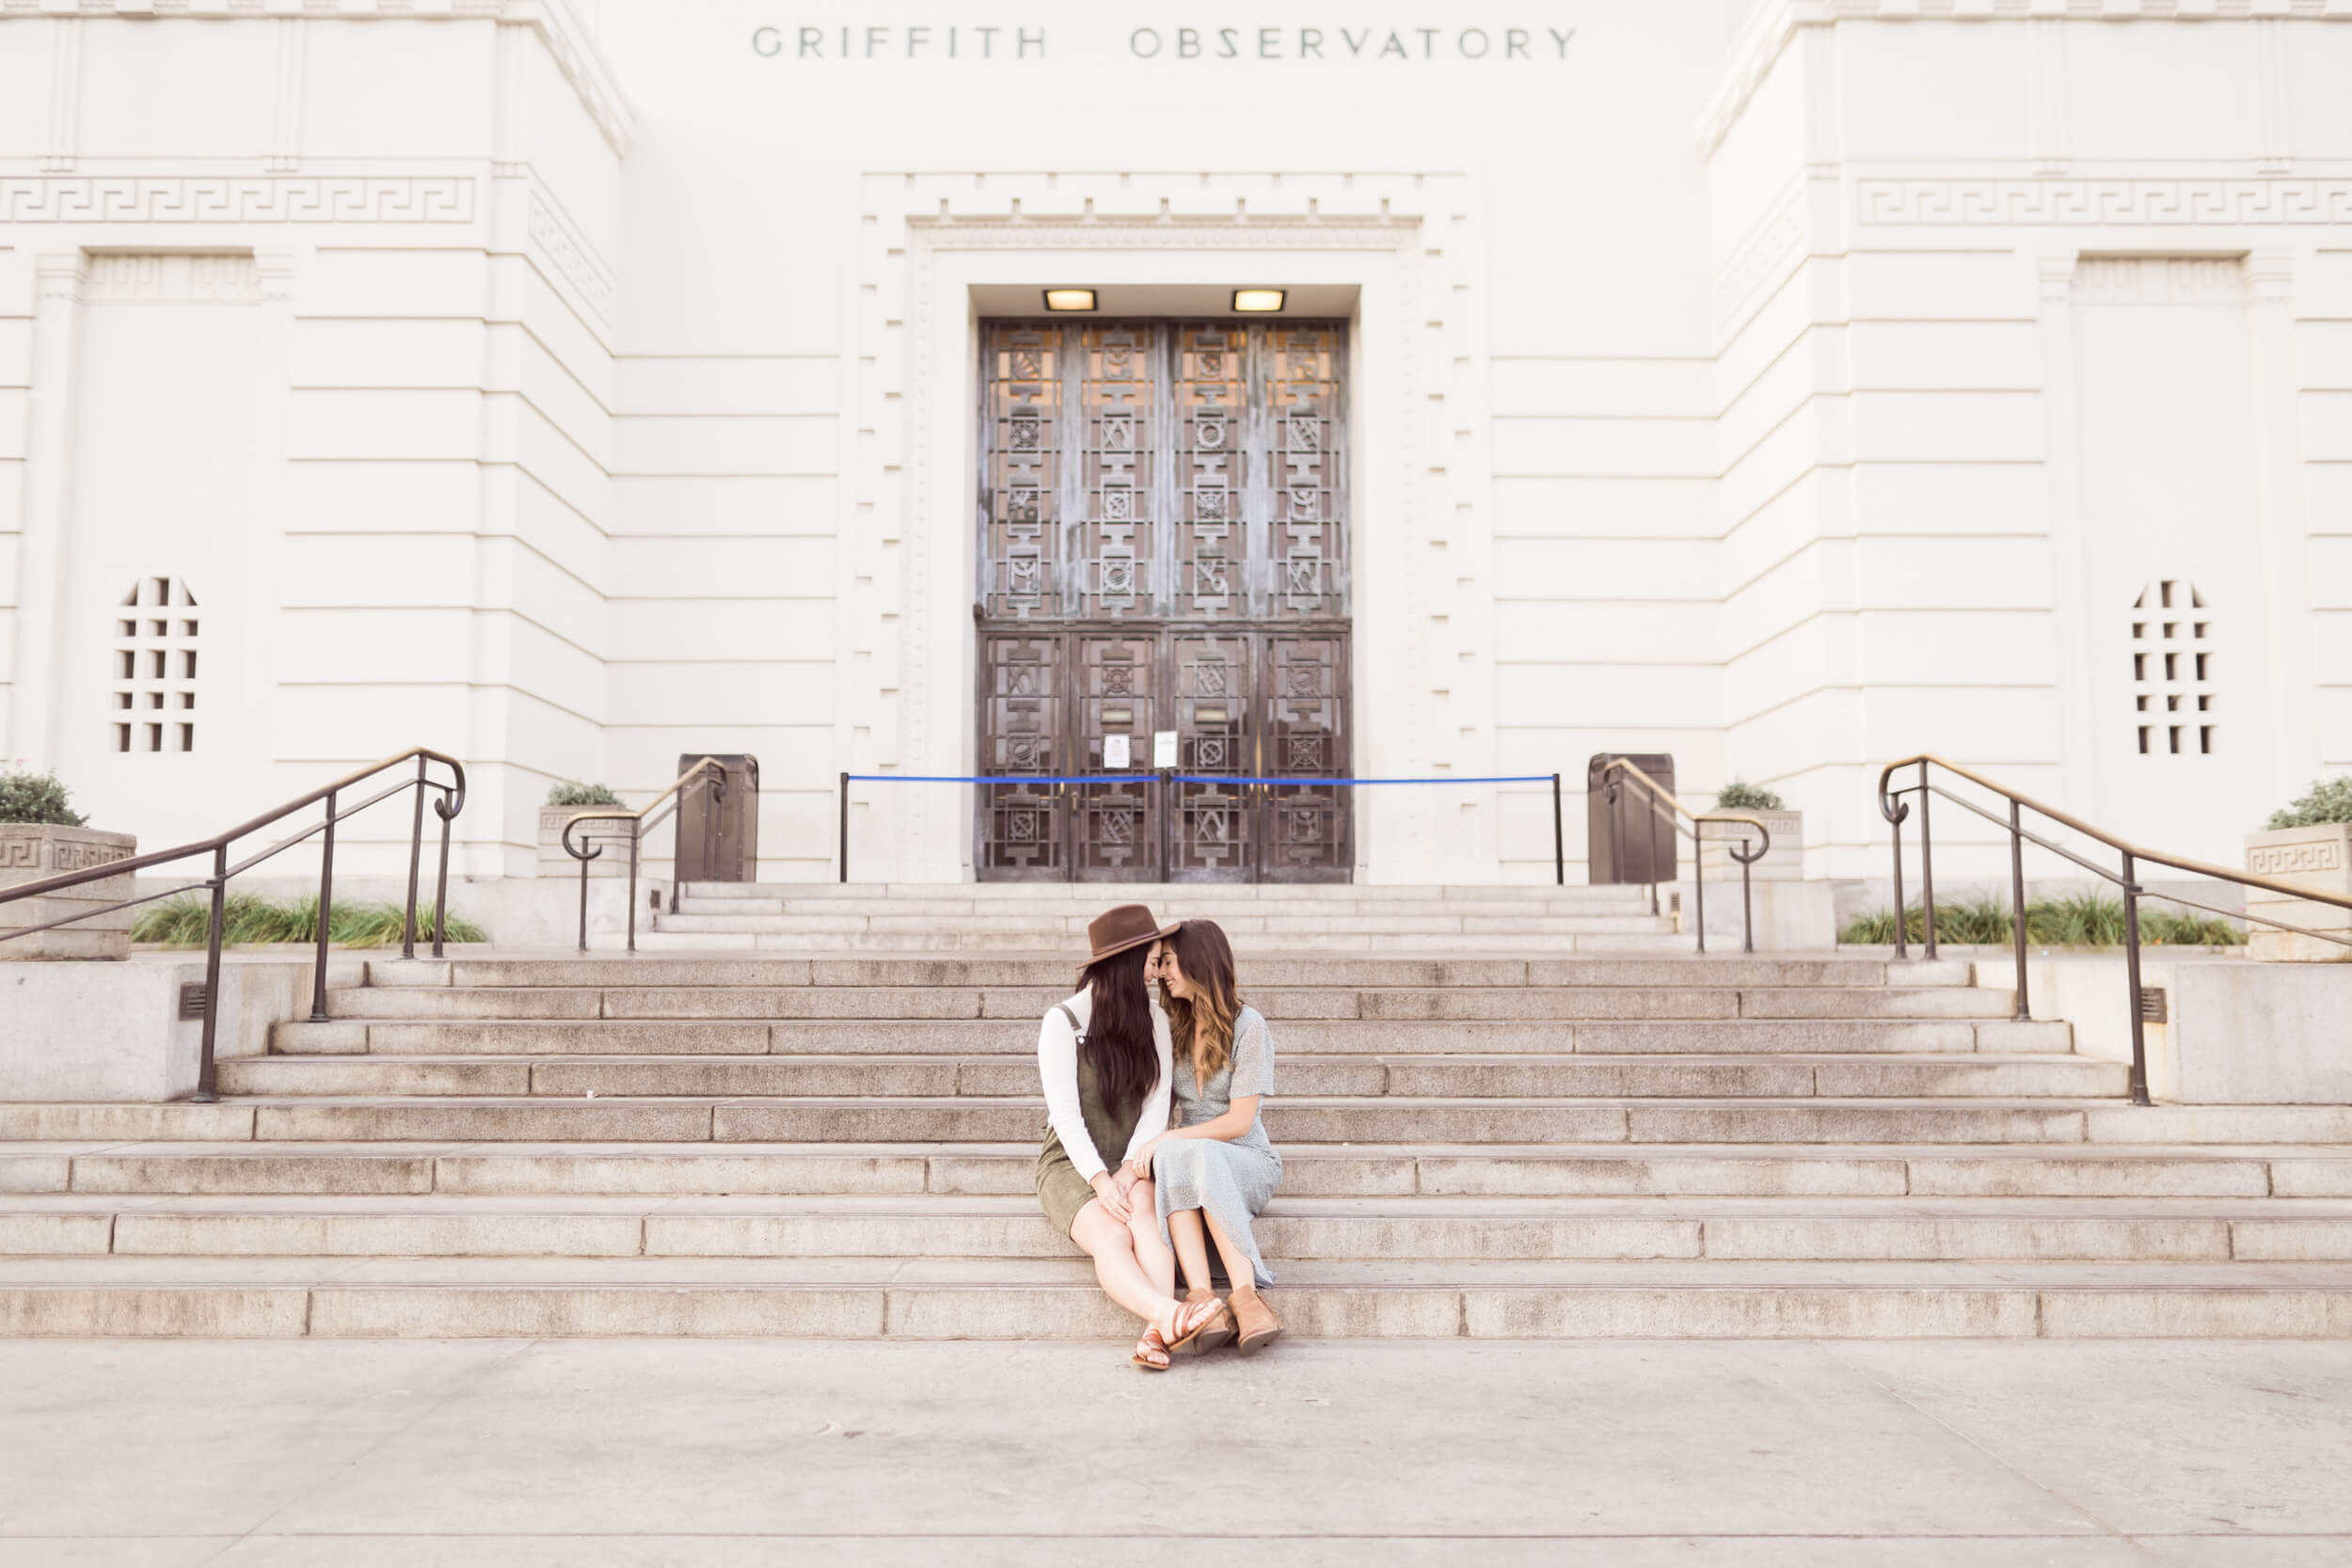 A female couple snuggles on the steps of the Griffith Observatory in Los Angeles, USA.